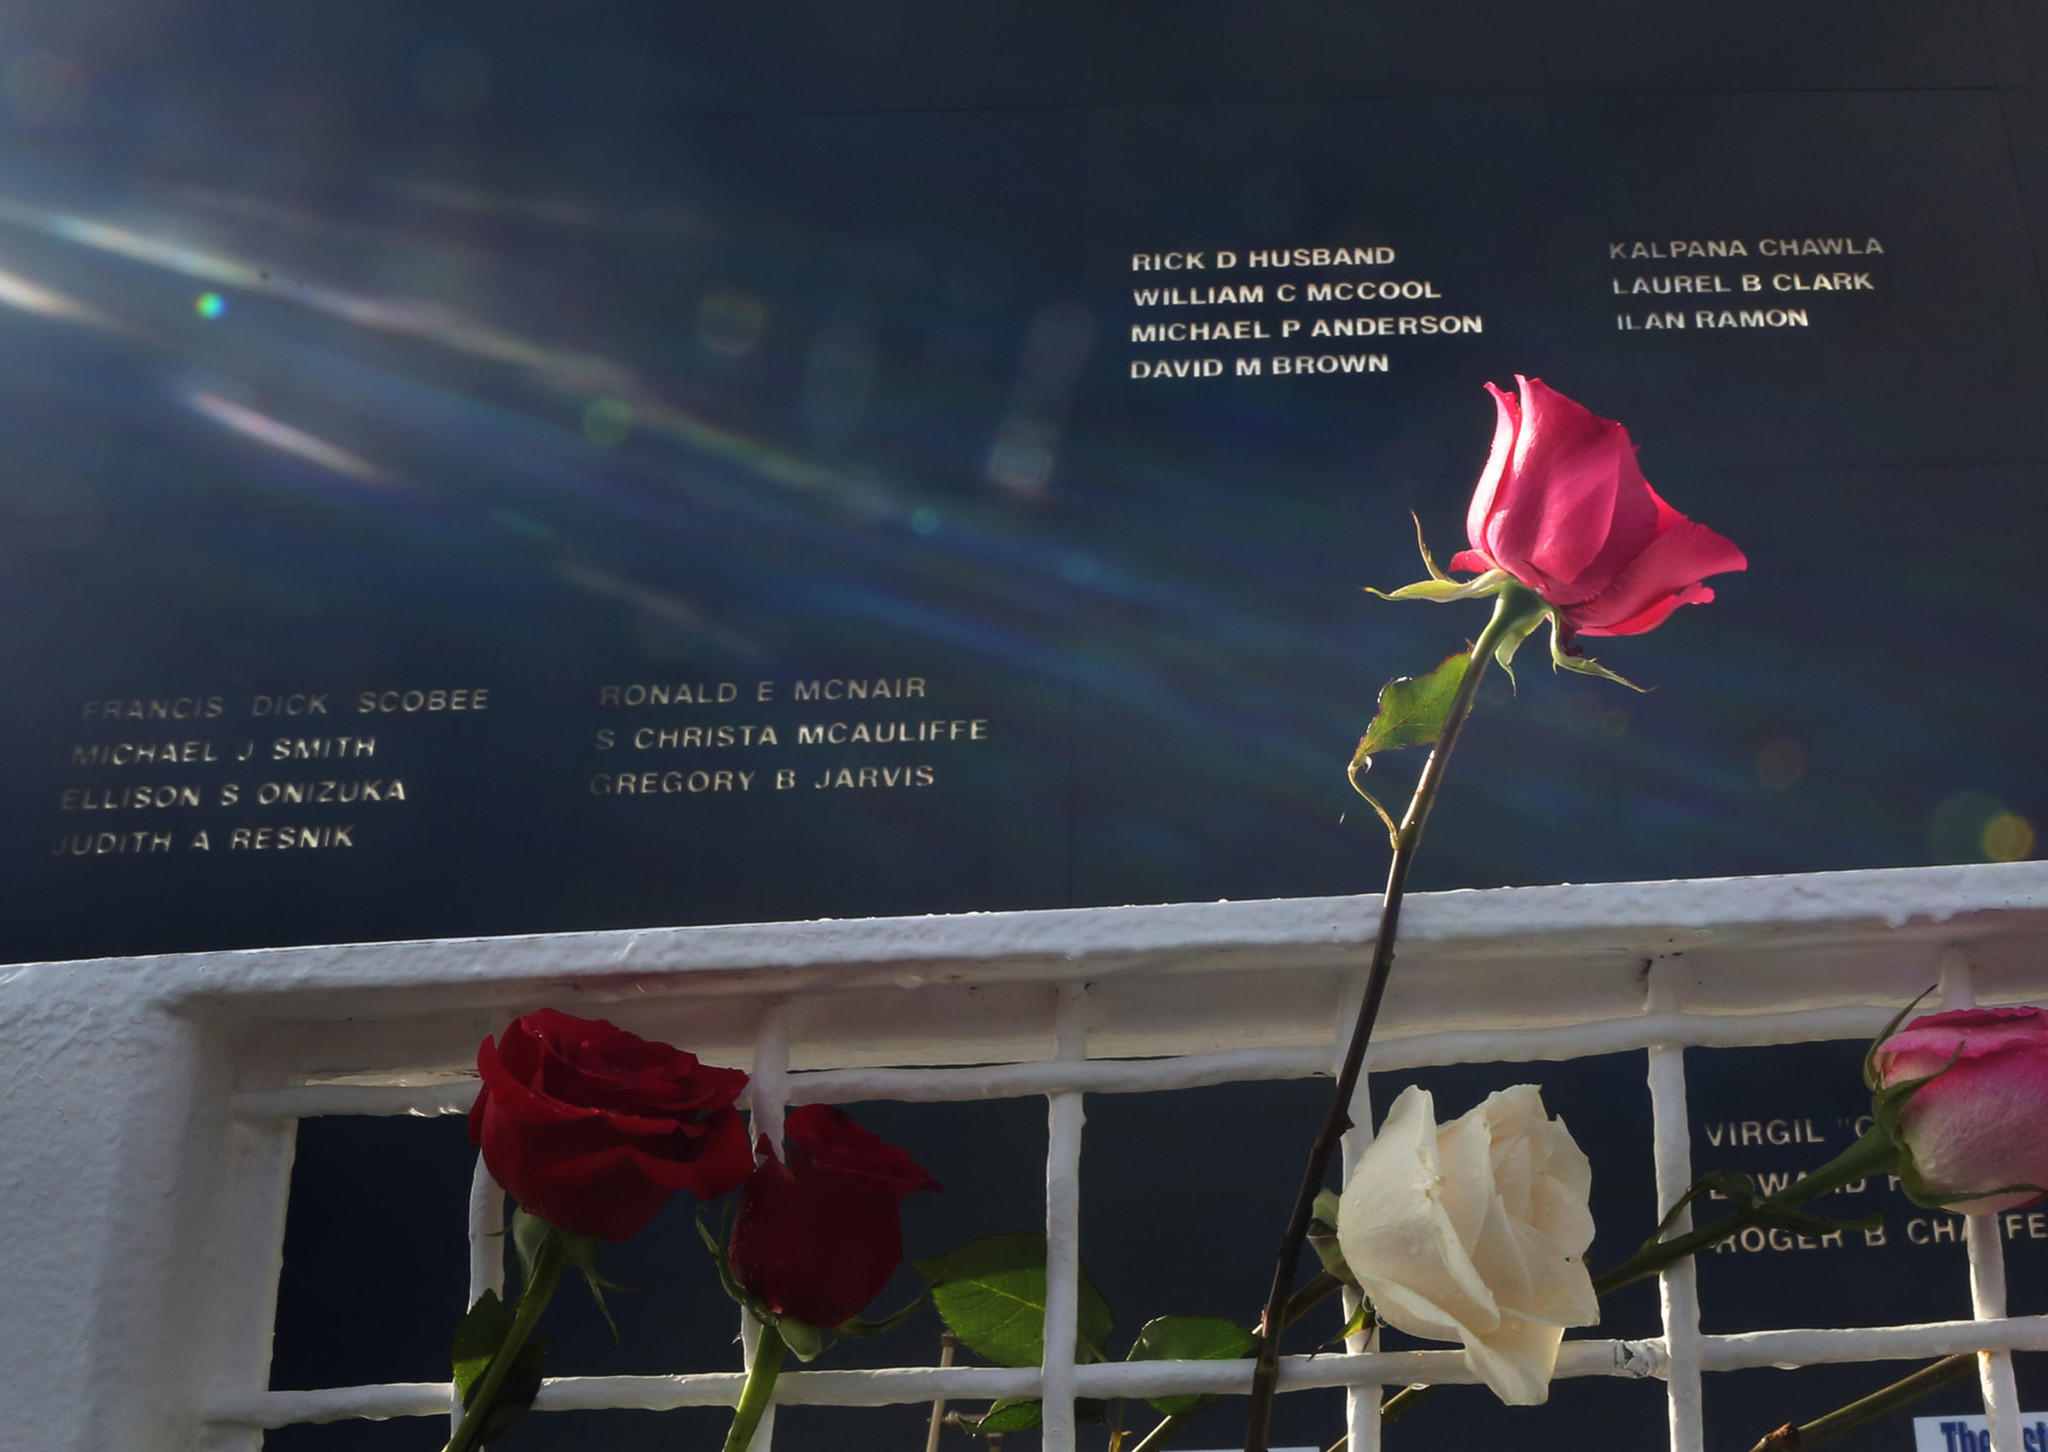 Flowers are left at Kennedy Space Center in memory of astronauts who died during service to the space program